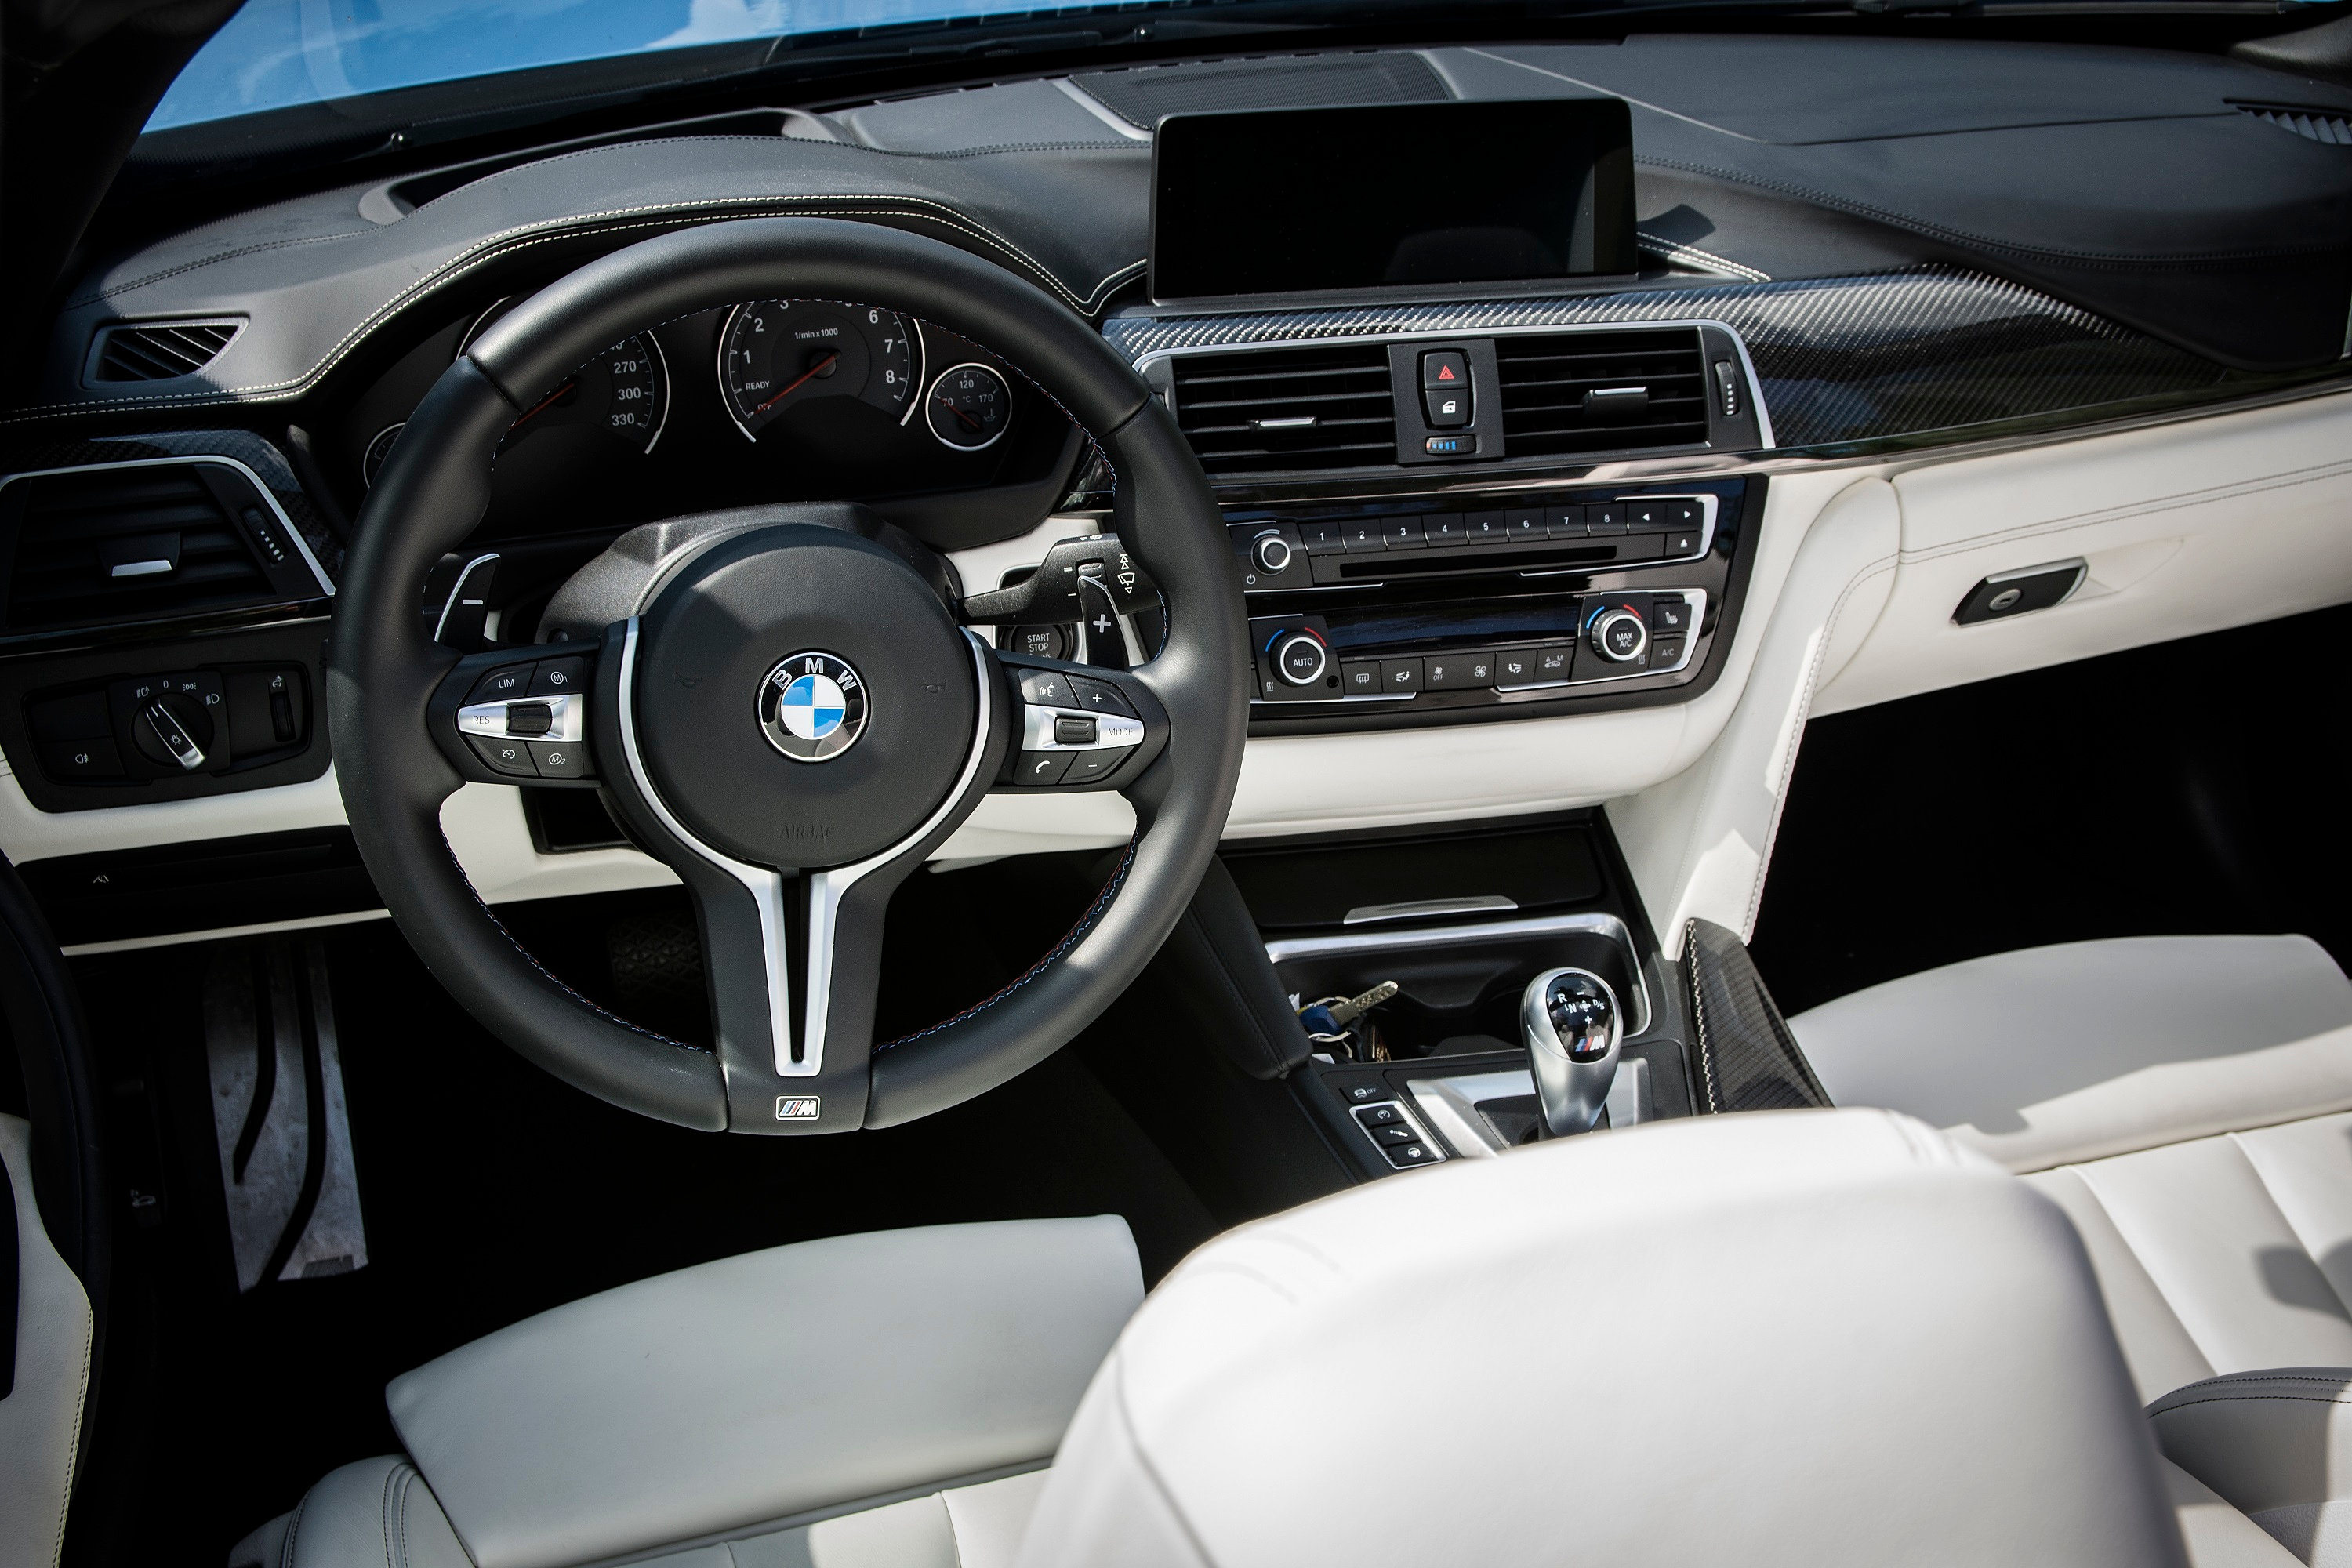 sportwagen mieten luxusautovermietung bmw m4 cabrio mieten. Black Bedroom Furniture Sets. Home Design Ideas